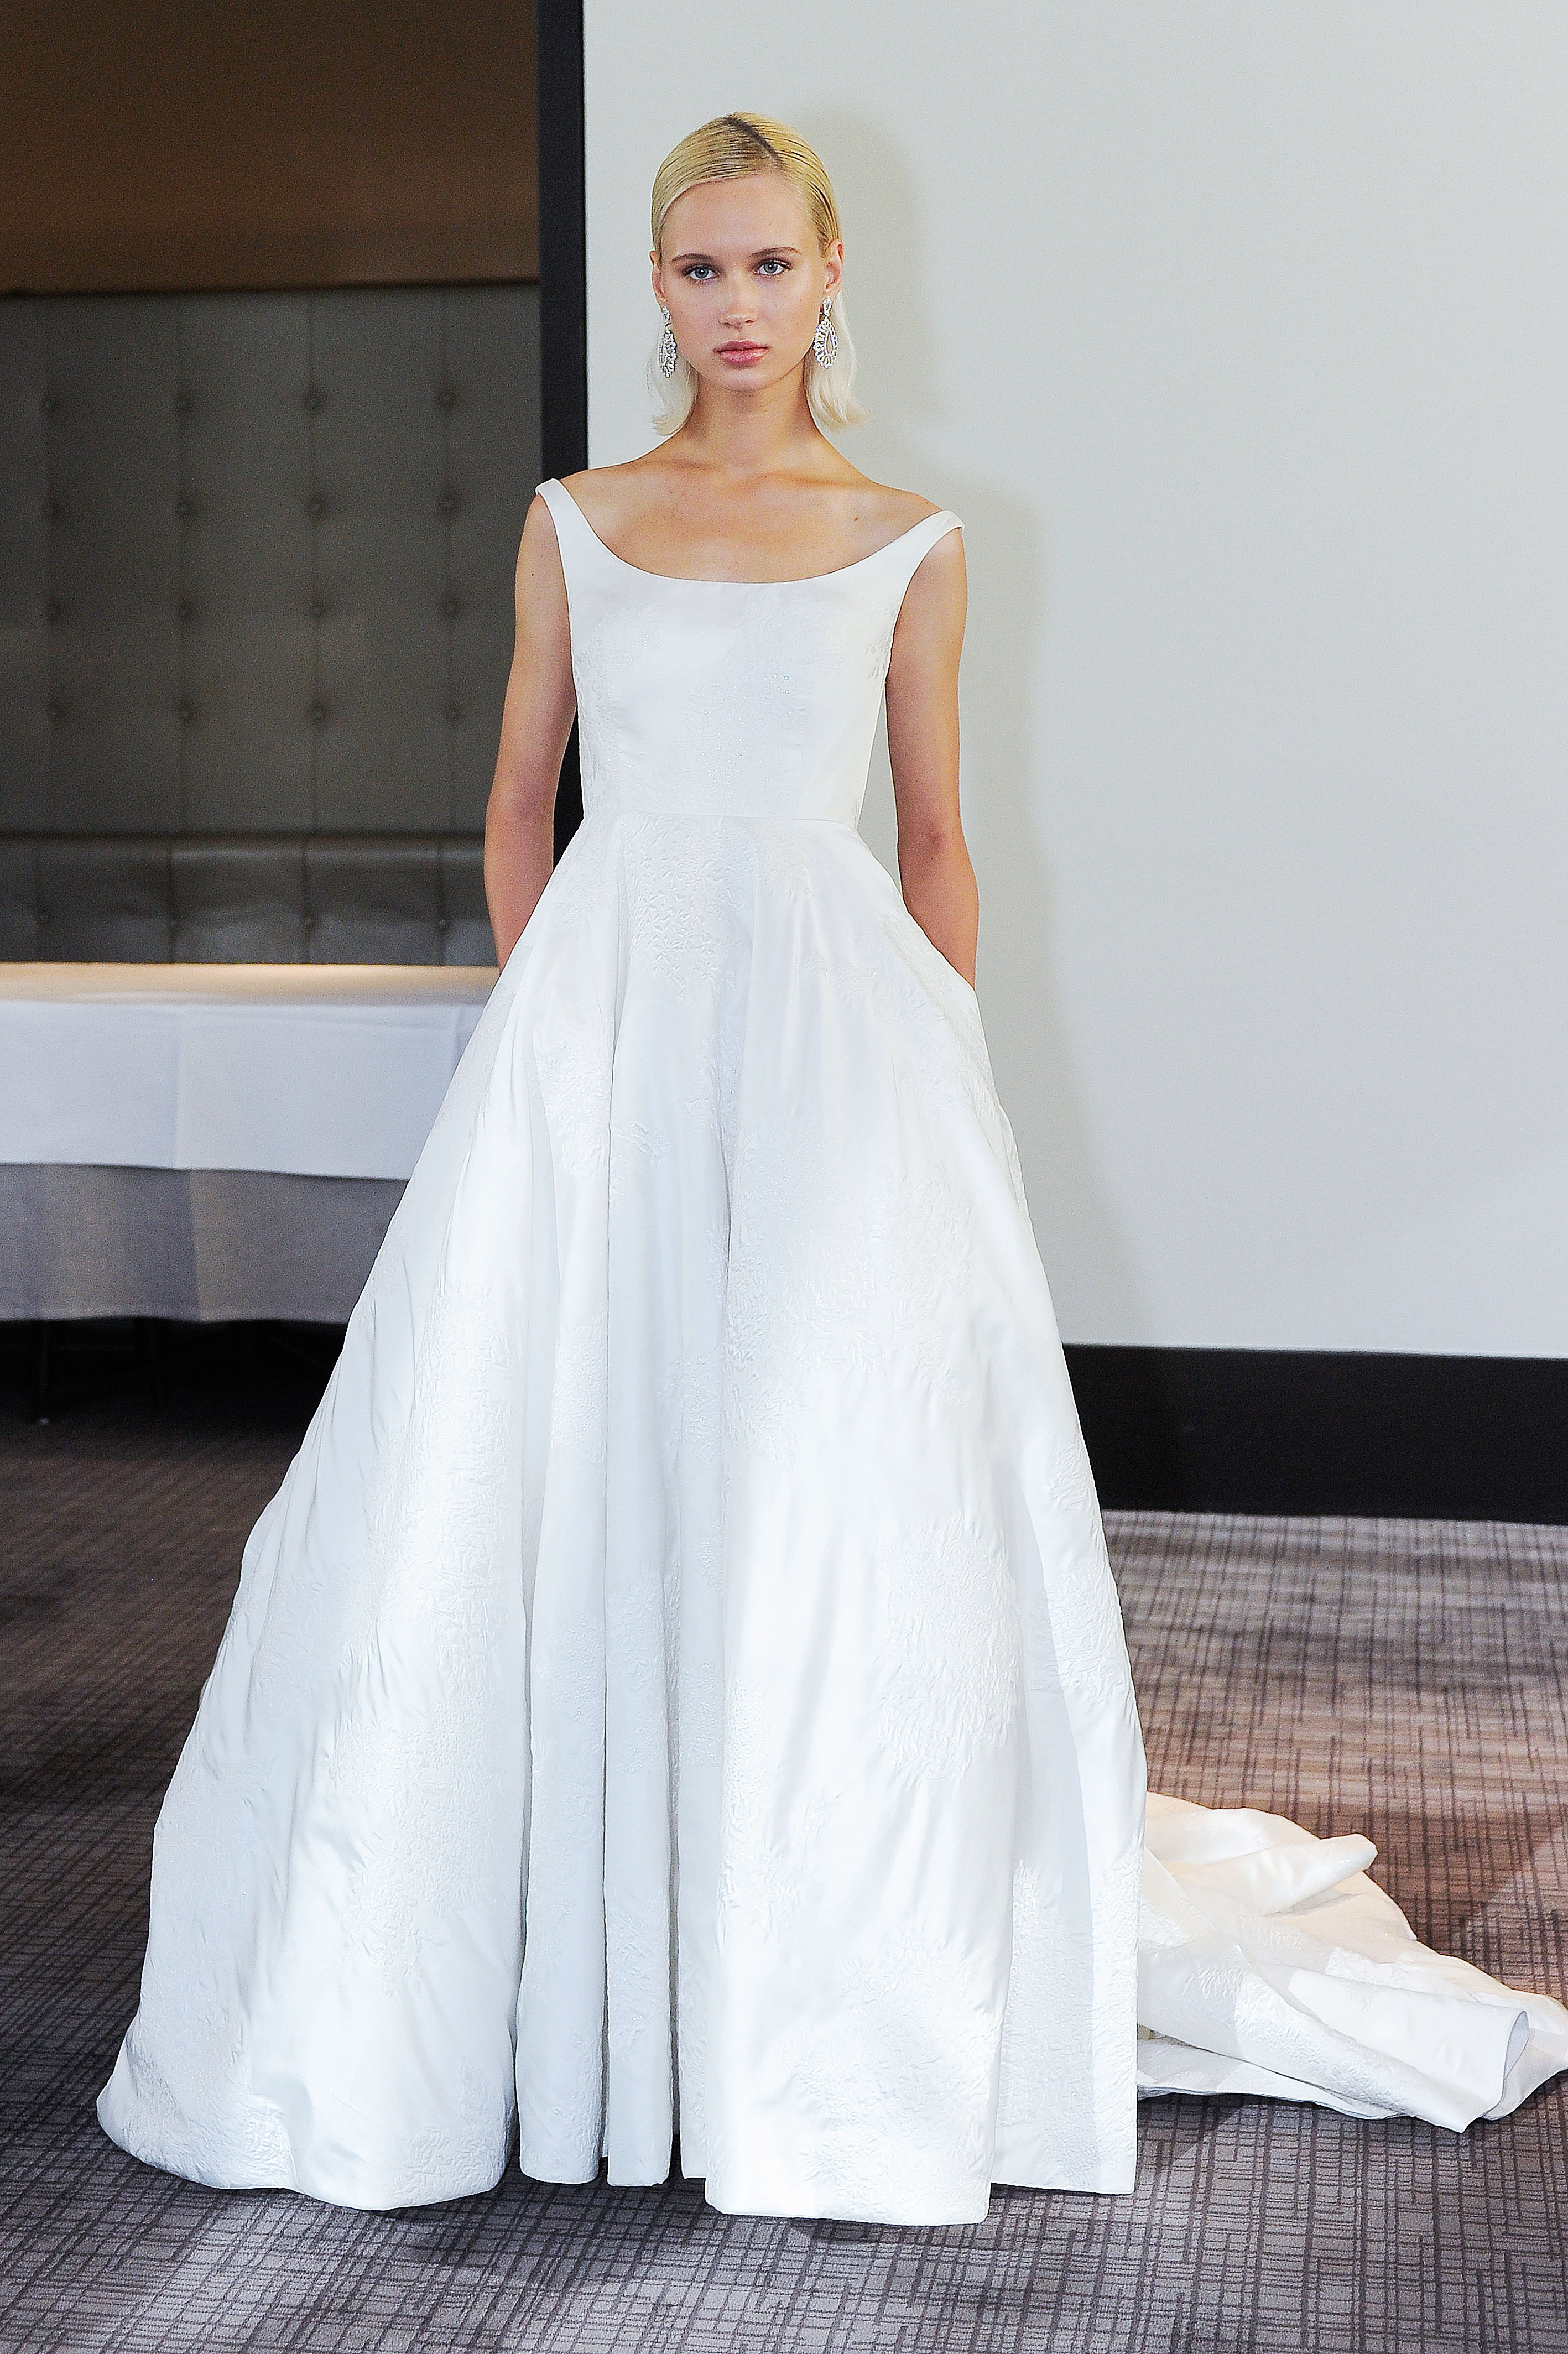 gracy accad ball gown wedding dress fall 2018